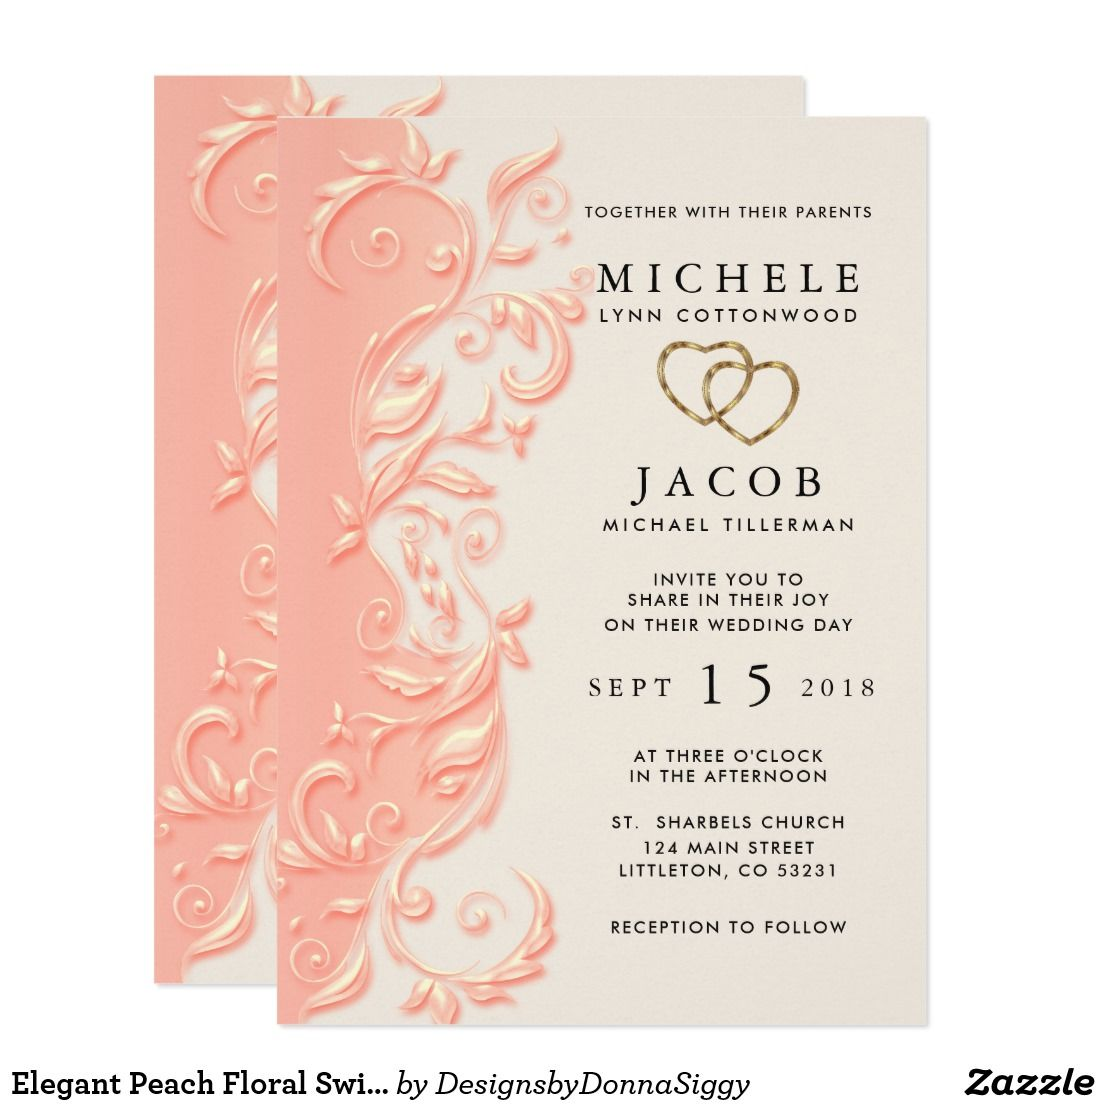 Elegant Peach Floral Swirl Wedding Invitation  Zazzle.com